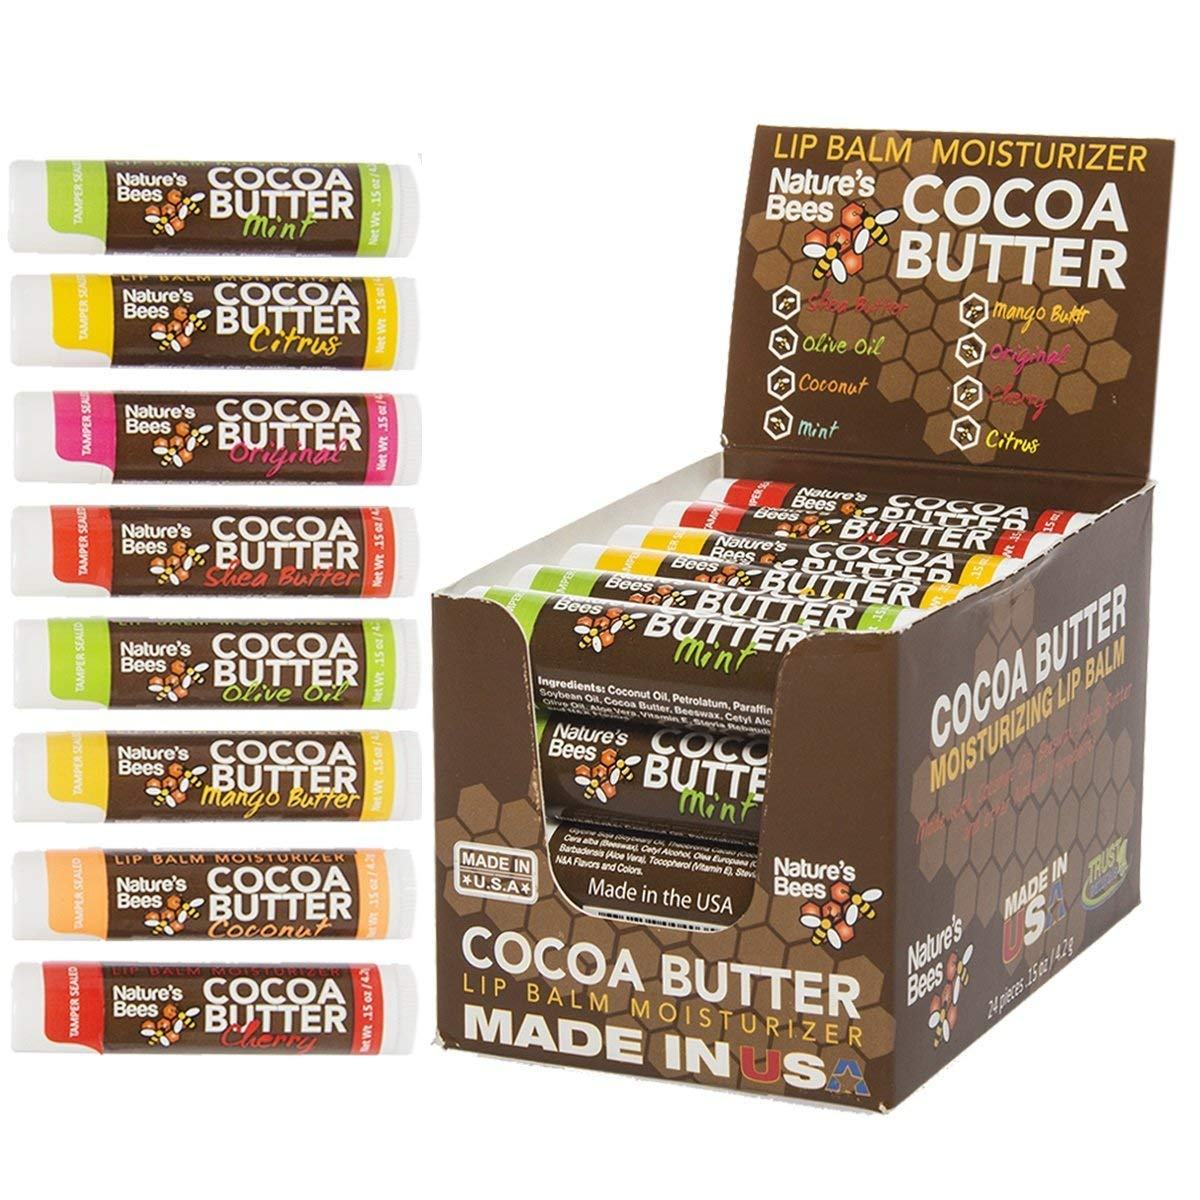 Nature's Bees Set of Two 24 Packs Cocoa Butter Lip Balm Tubes Moisturizer Chap Treatment (Assorted 8 Flavors, 6 of Each)